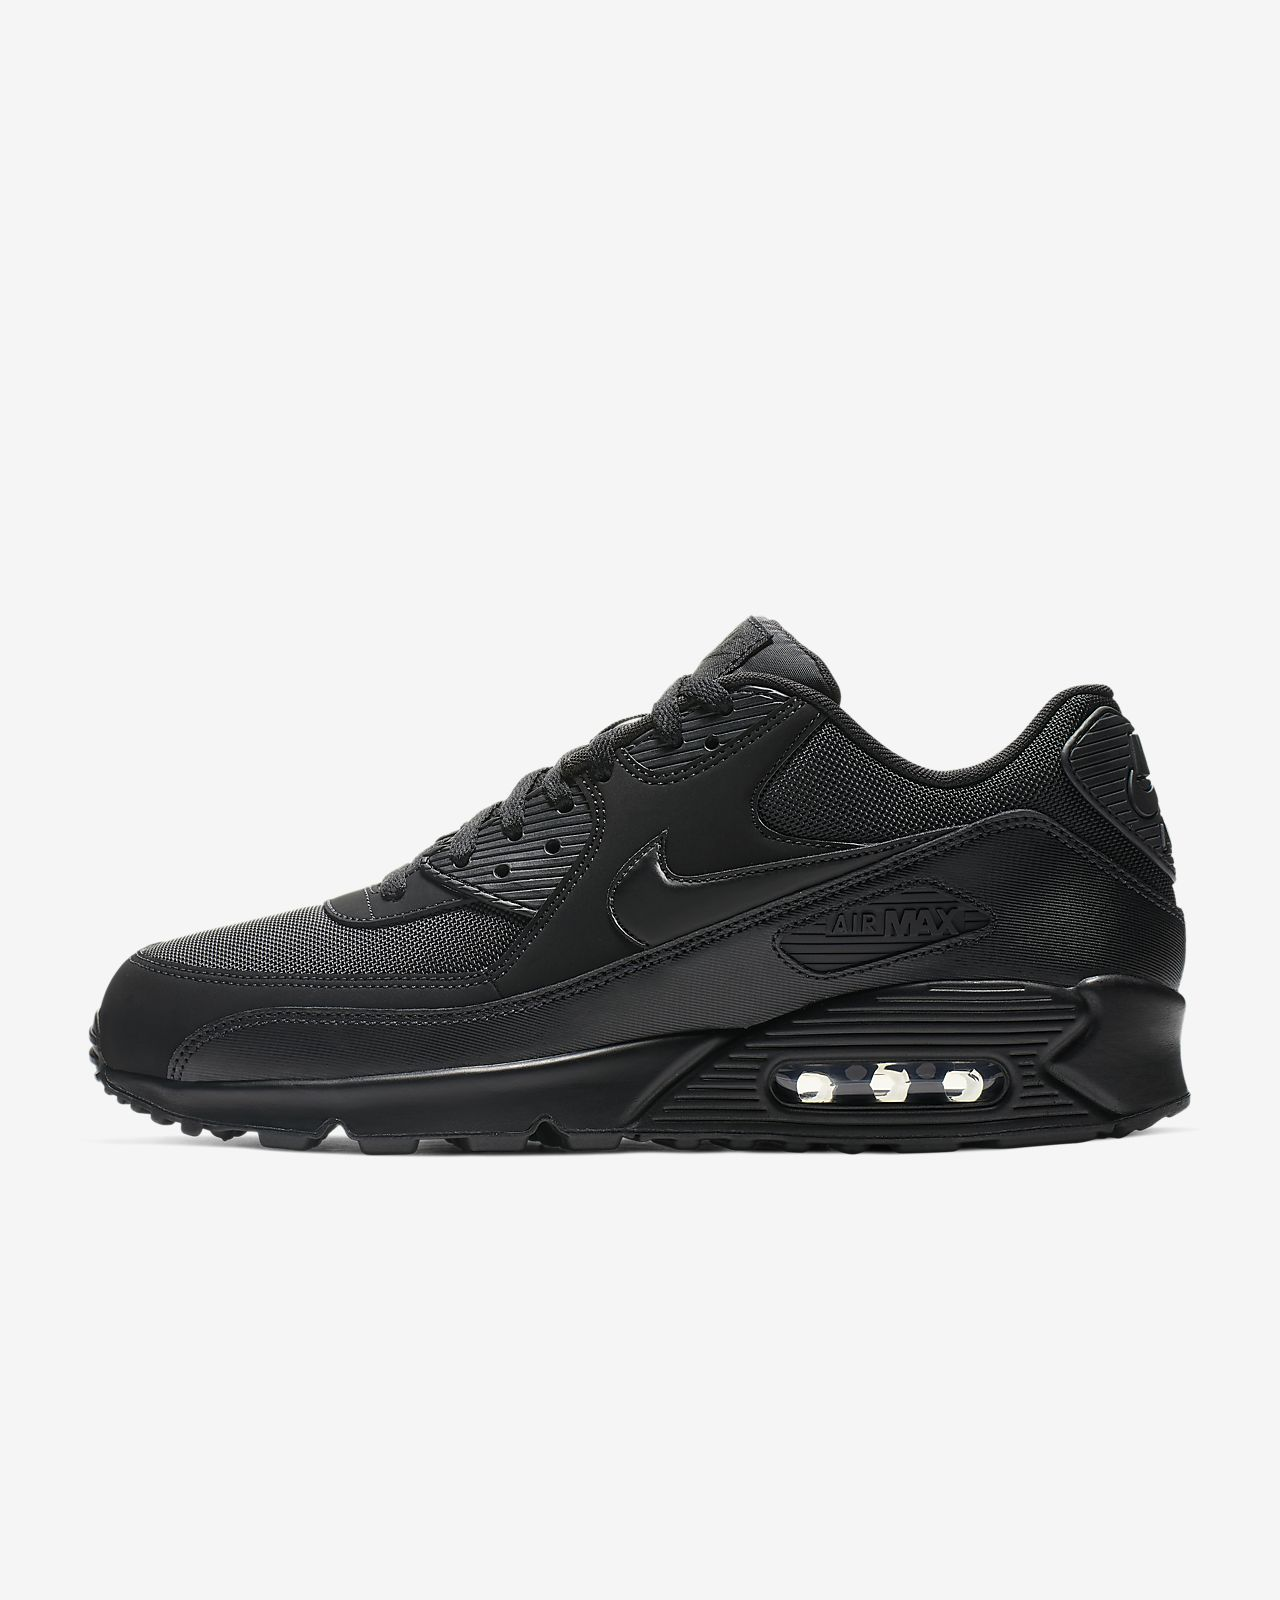 2air max 90 essential uomo nere